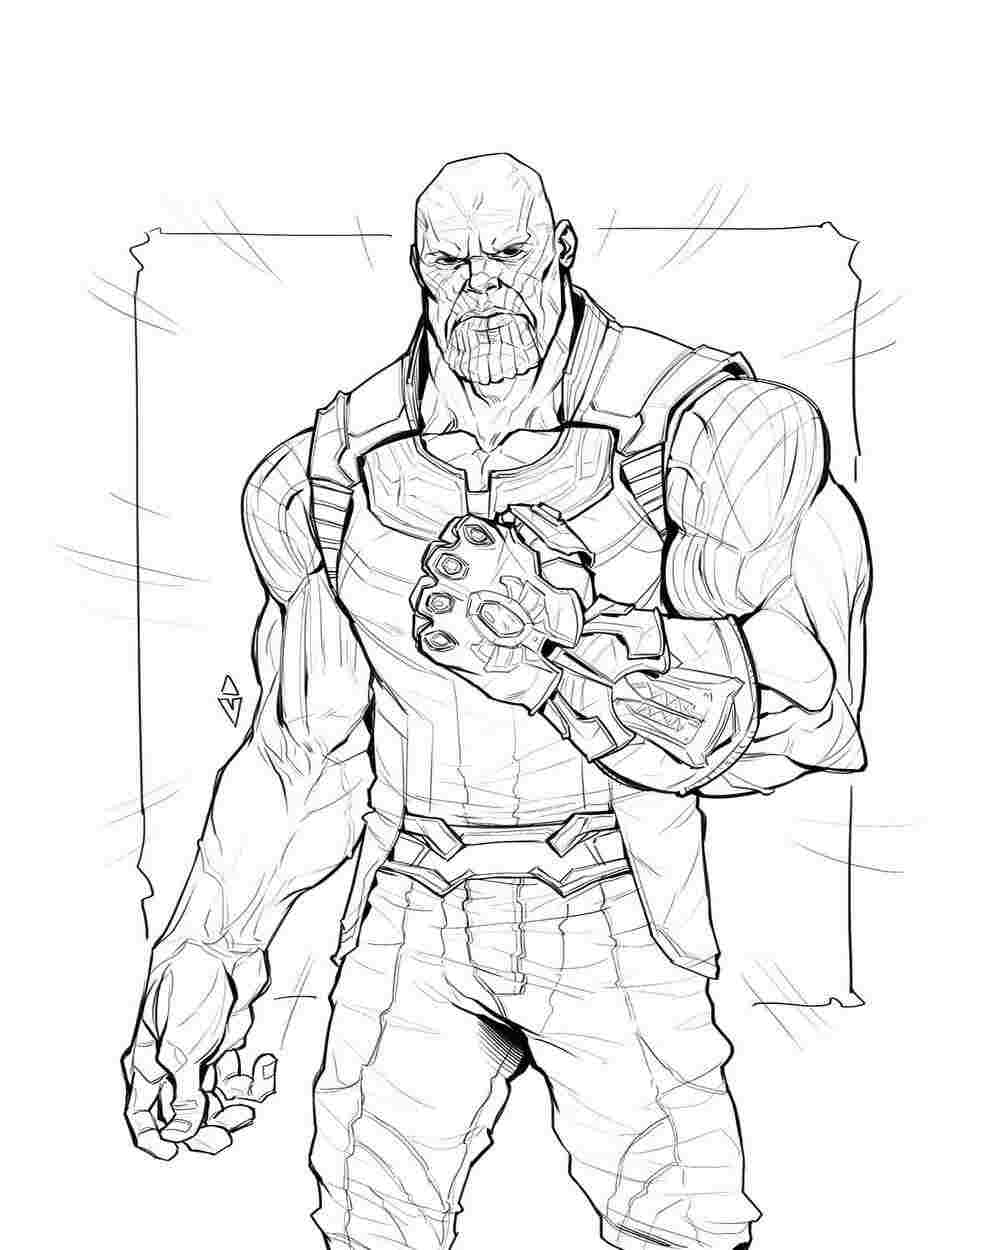 Superpower Thanos from the Avengers Infinity War Coloring Pages